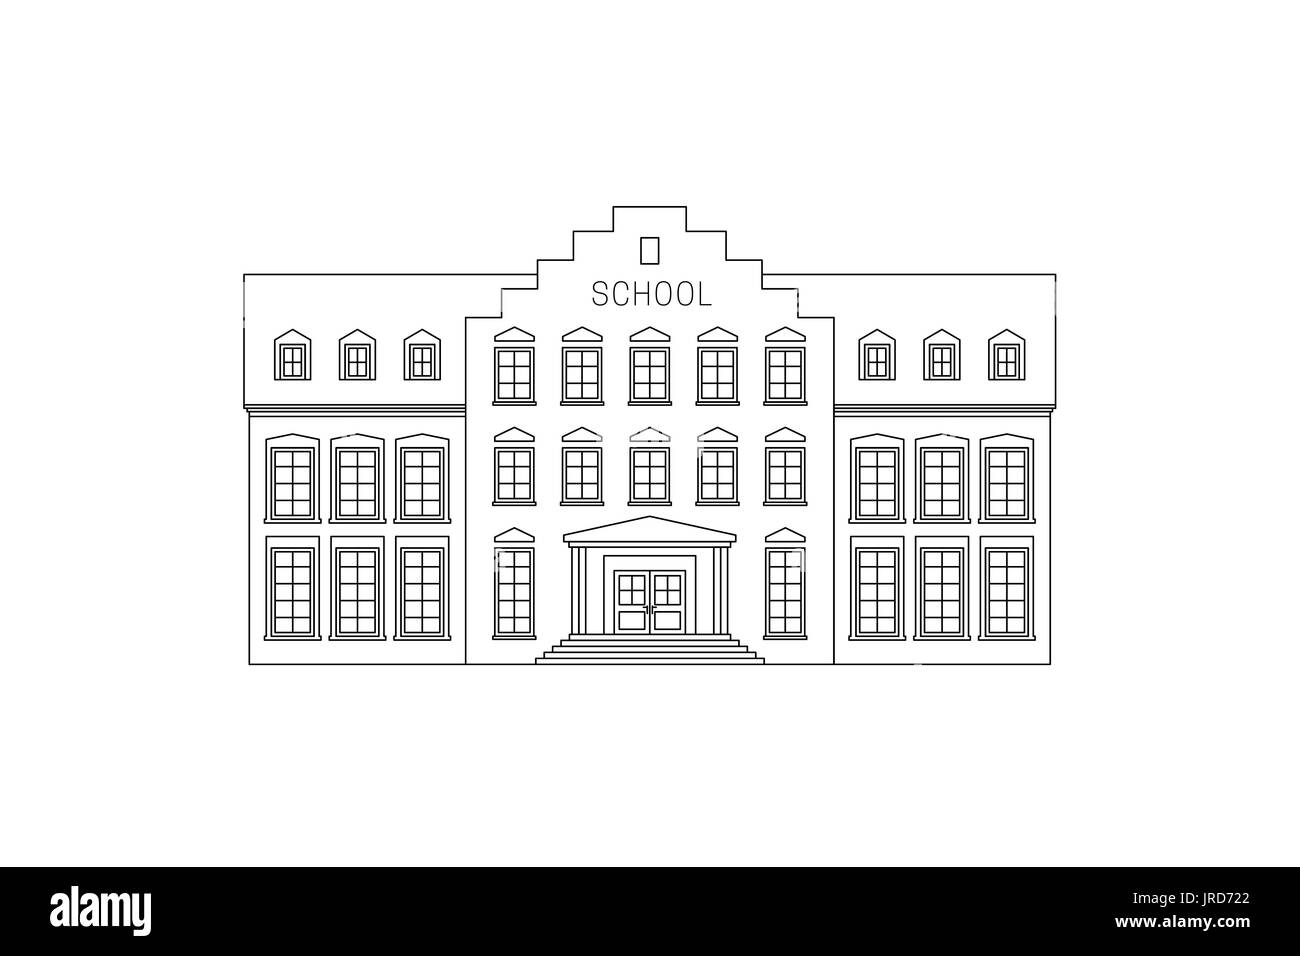 Line Drawing School : College building illustration cut out stock images